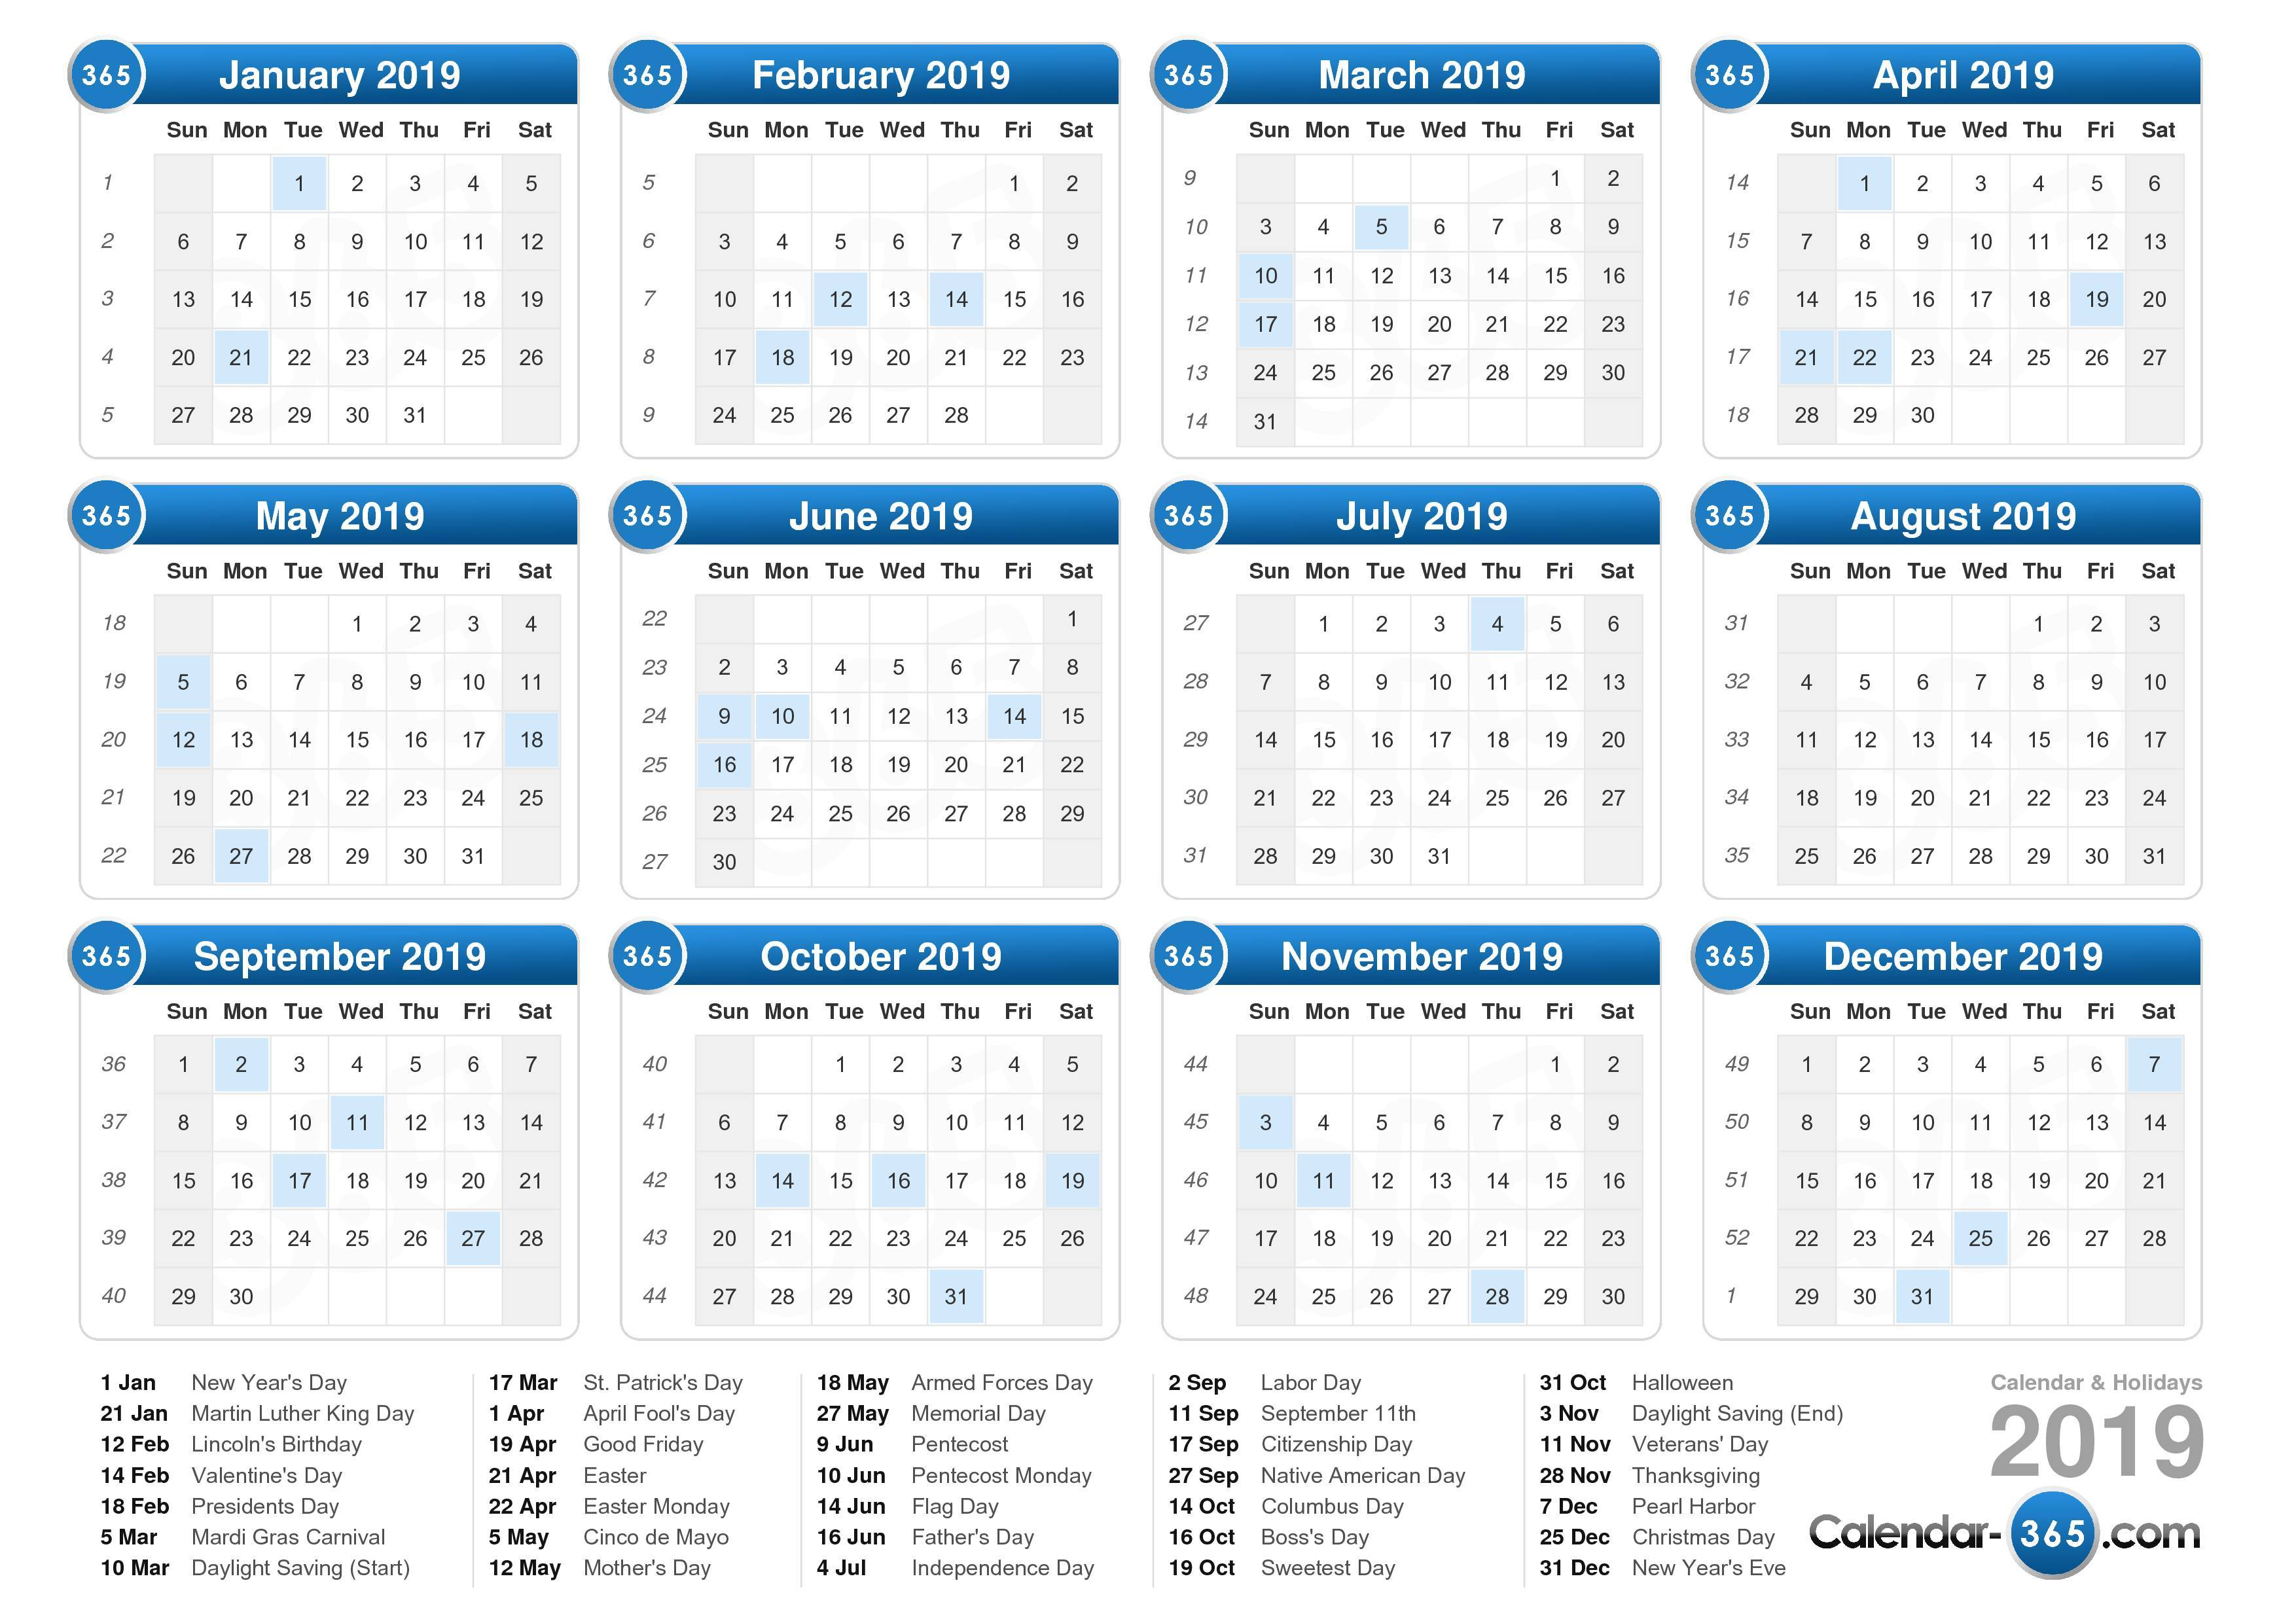 Calendar 2019 Entire Year With